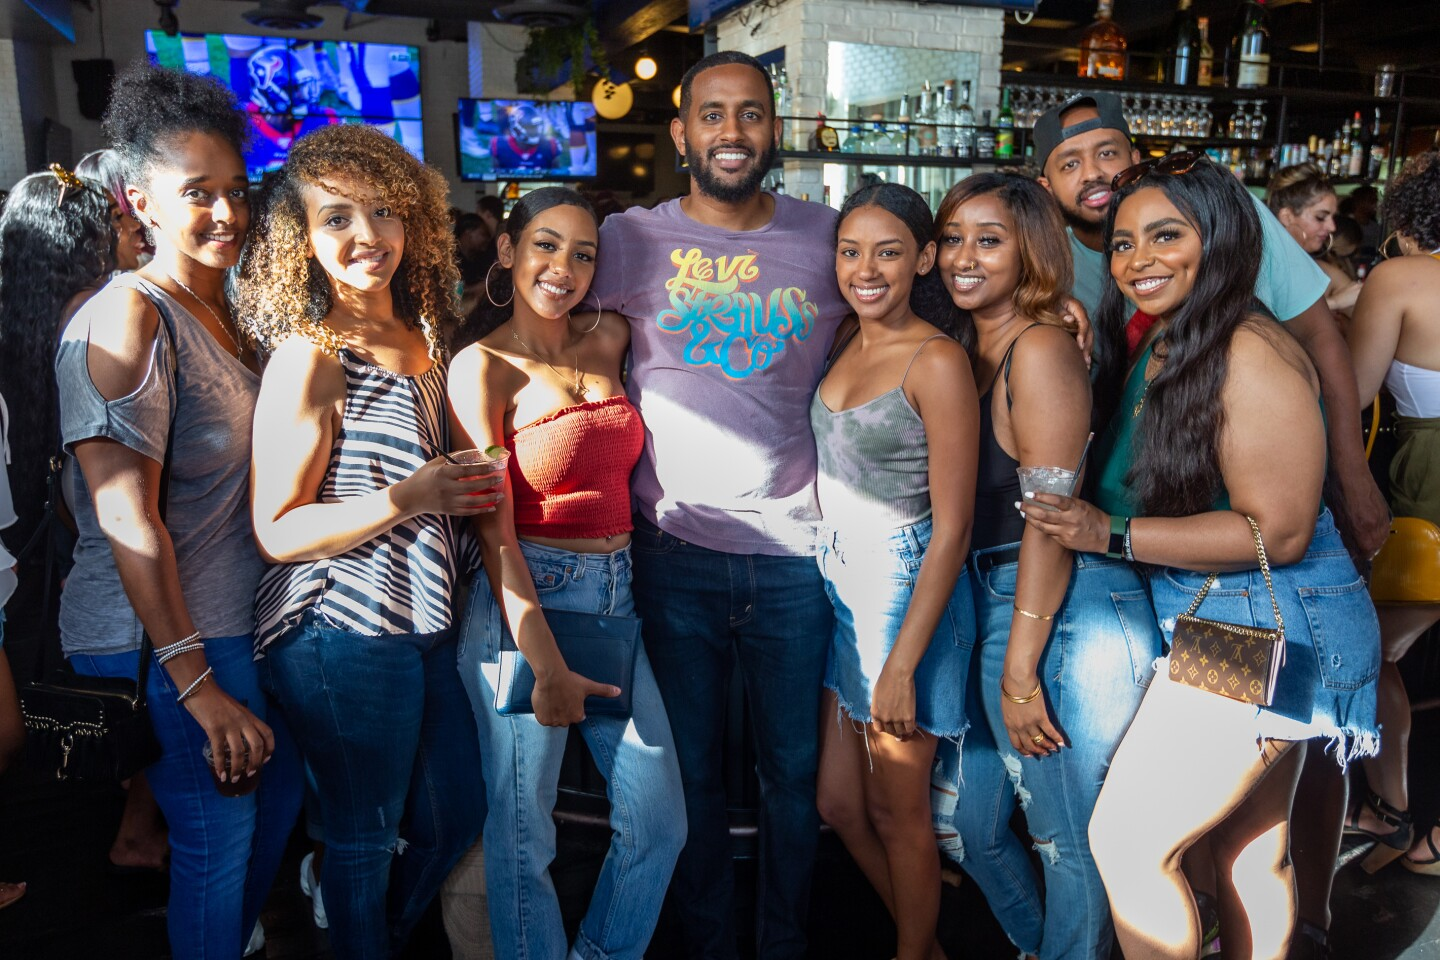 The bottomless mimosas flowed as a DJ spun tunes at Brunch is Life at The Owl Drug Co. in downtown San Diego on Sunday, Sept. 22, 2019.